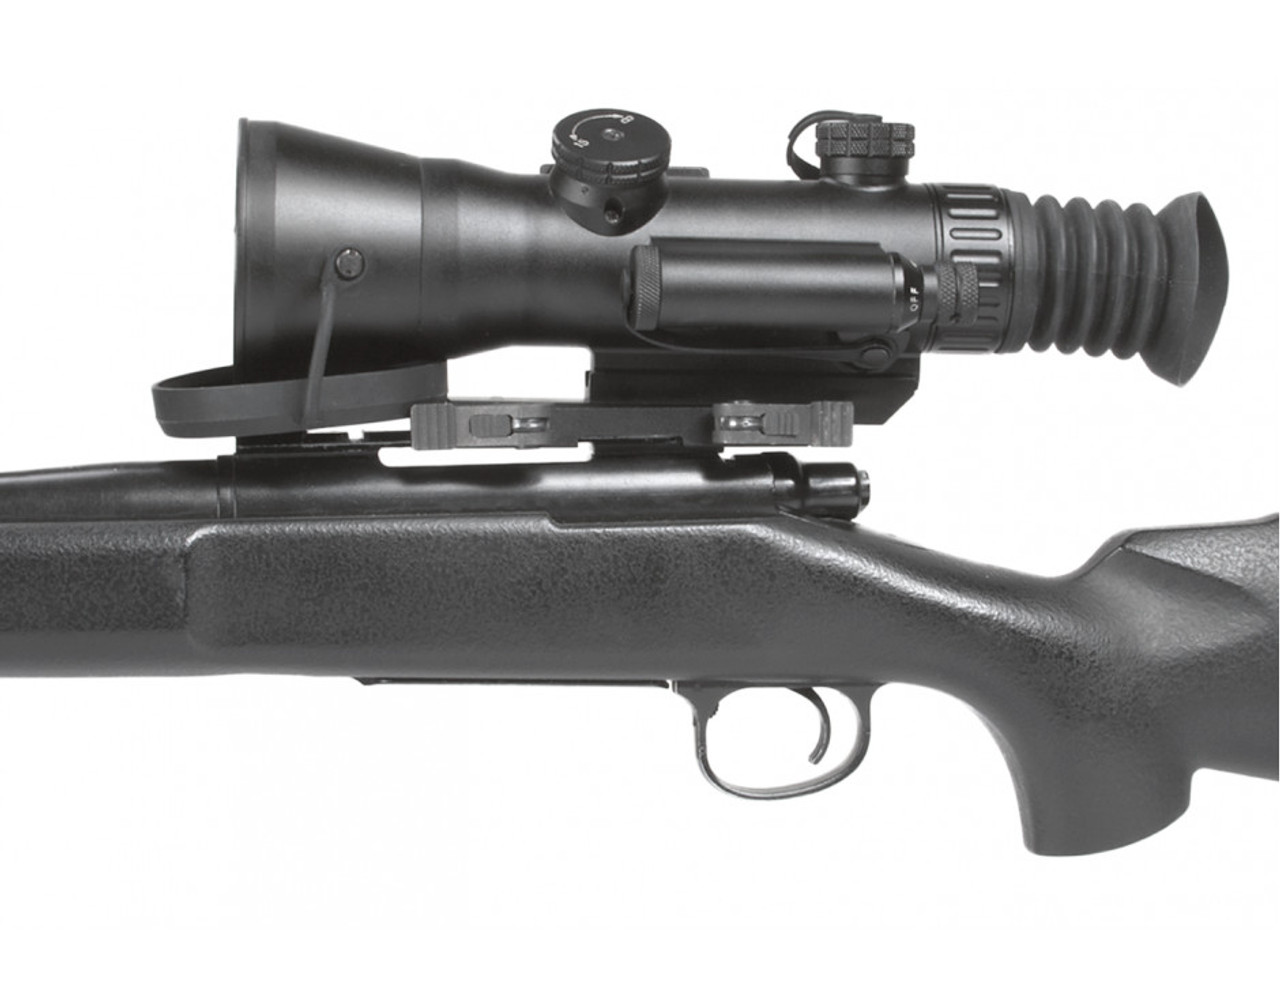 """AGM Wolverine-4 NL2 Night Vision Rifle Scope 4x Gen 2+ """"Level 2"""" with Sioux850 Long-Range Infrared Illuminator (AGM Wolverine-4 NL2)"""